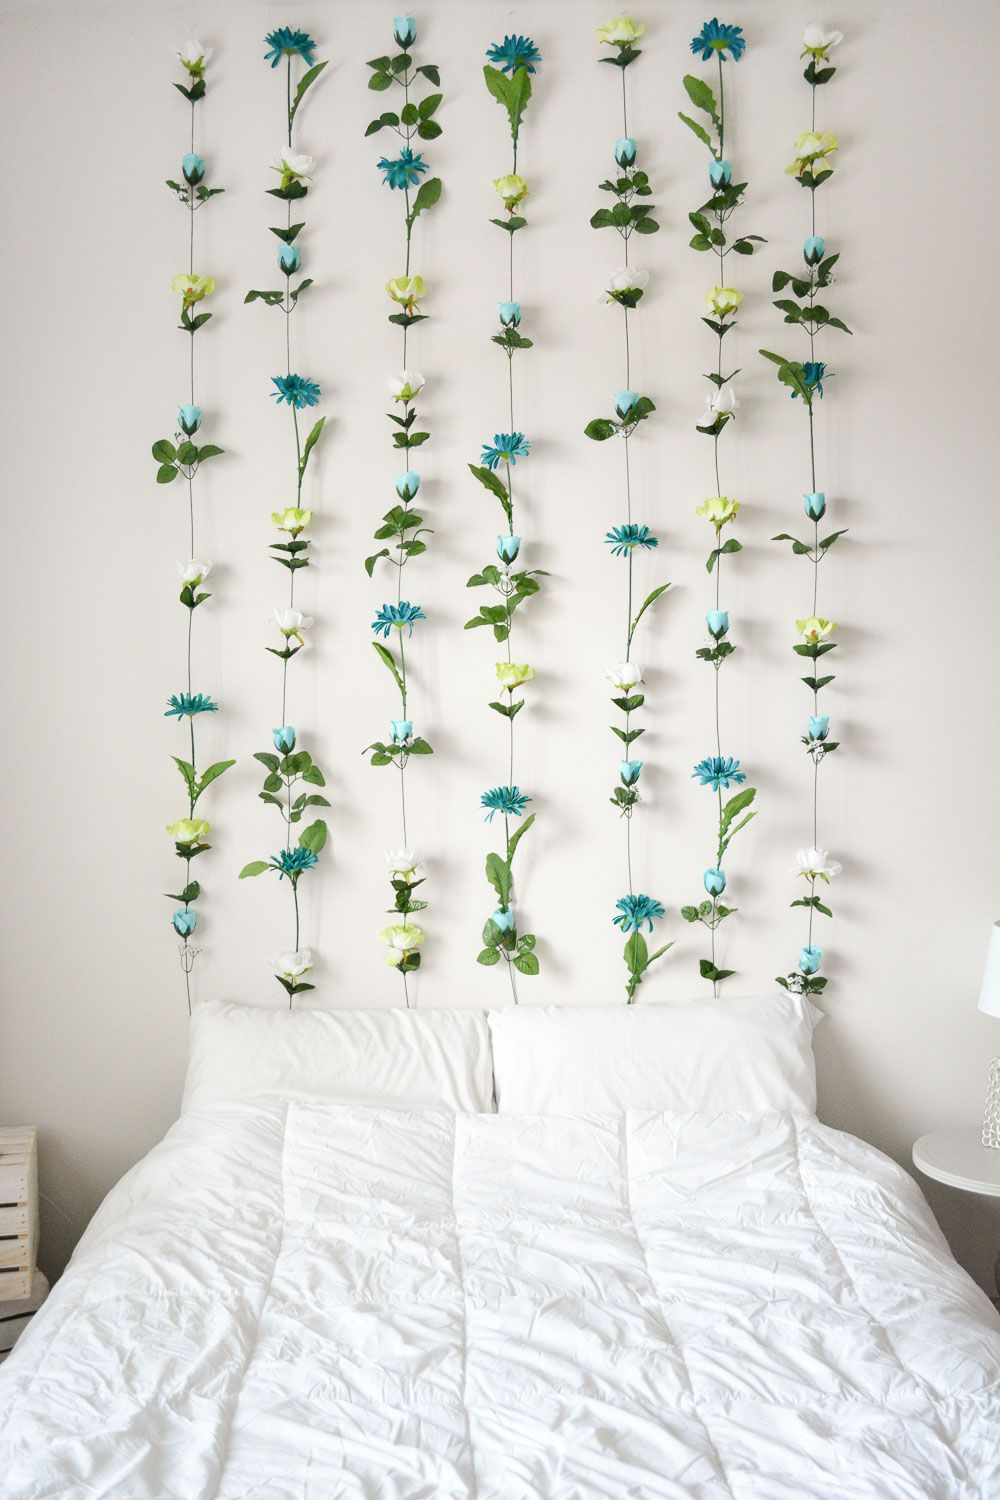 10 Best DIY Wall Decor Ideas in 2018 - DIY Wall Art